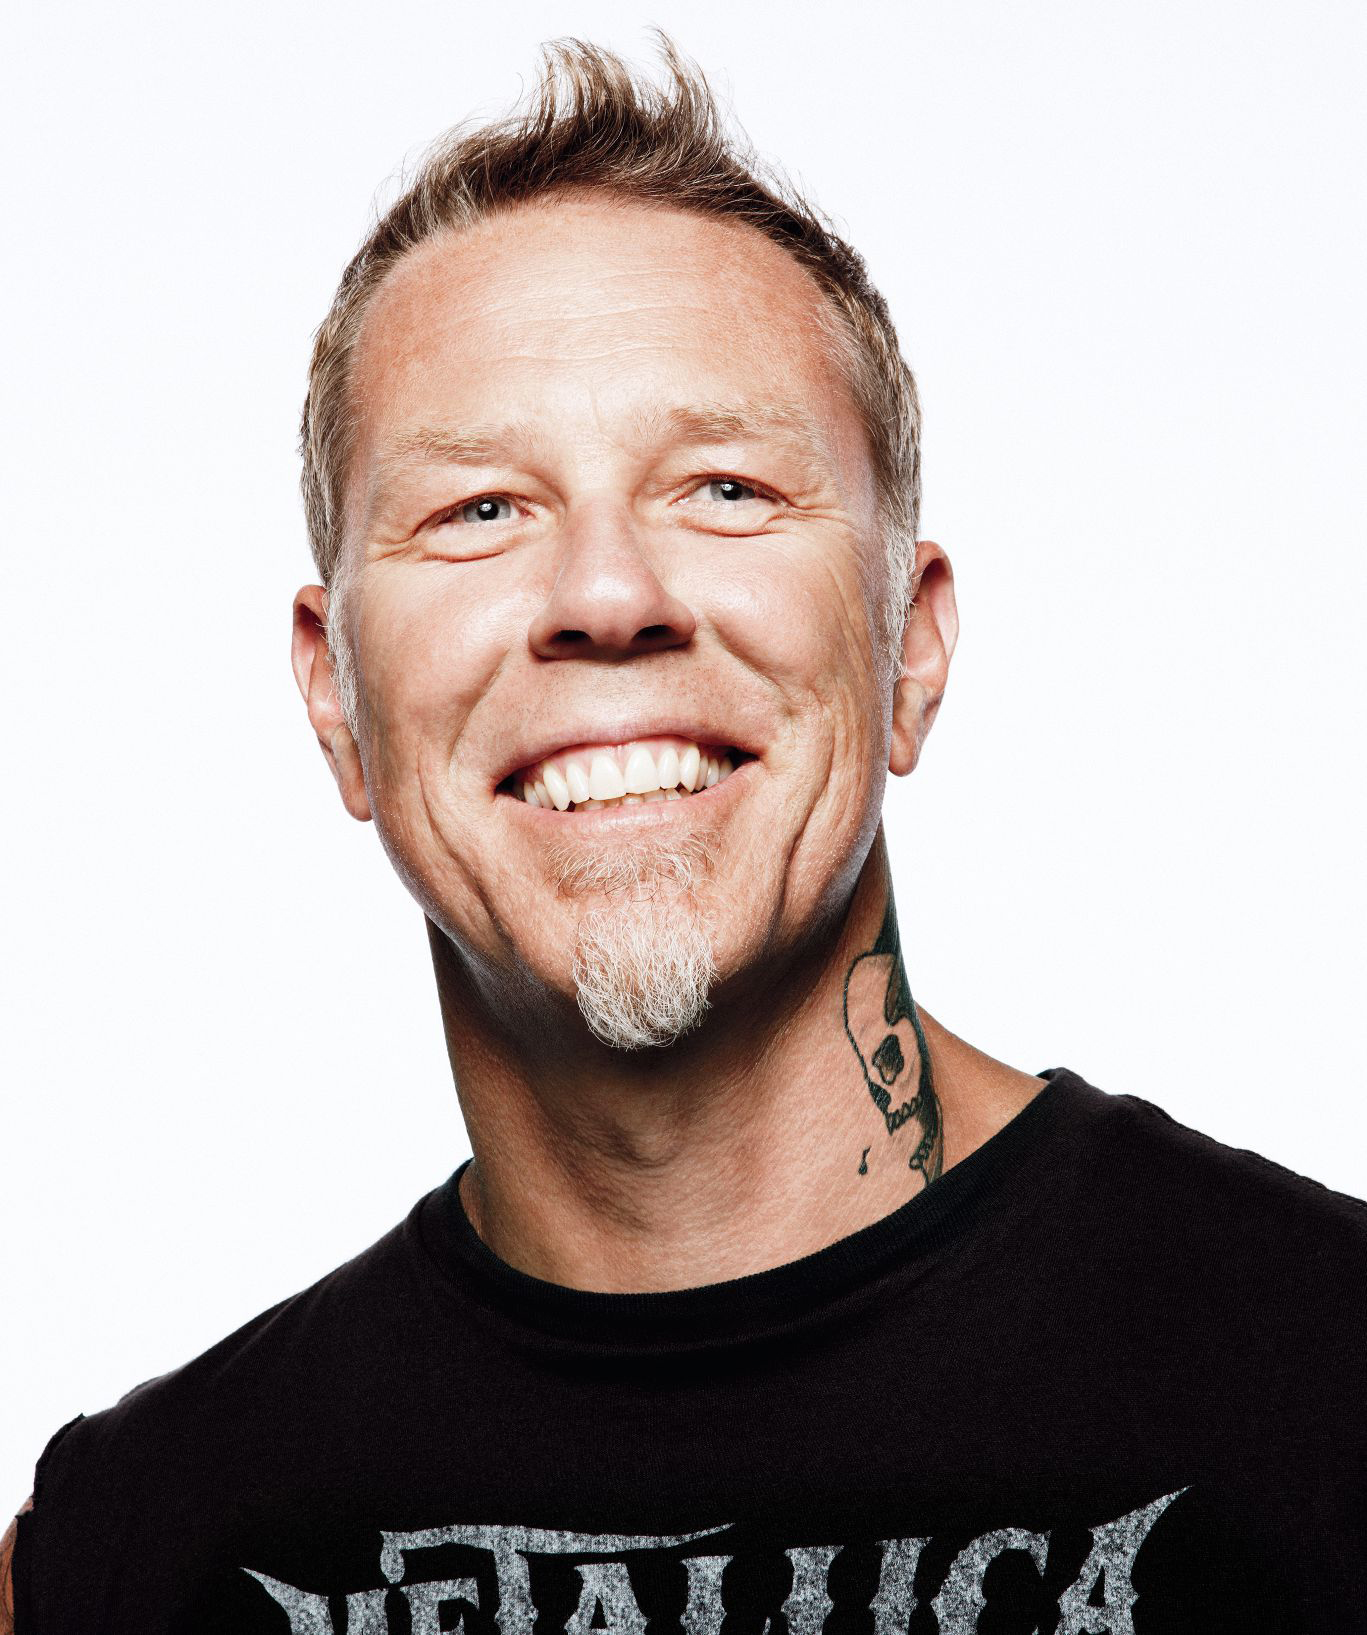 james hetfield 2018 wife tattoos smoking body facts. Black Bedroom Furniture Sets. Home Design Ideas